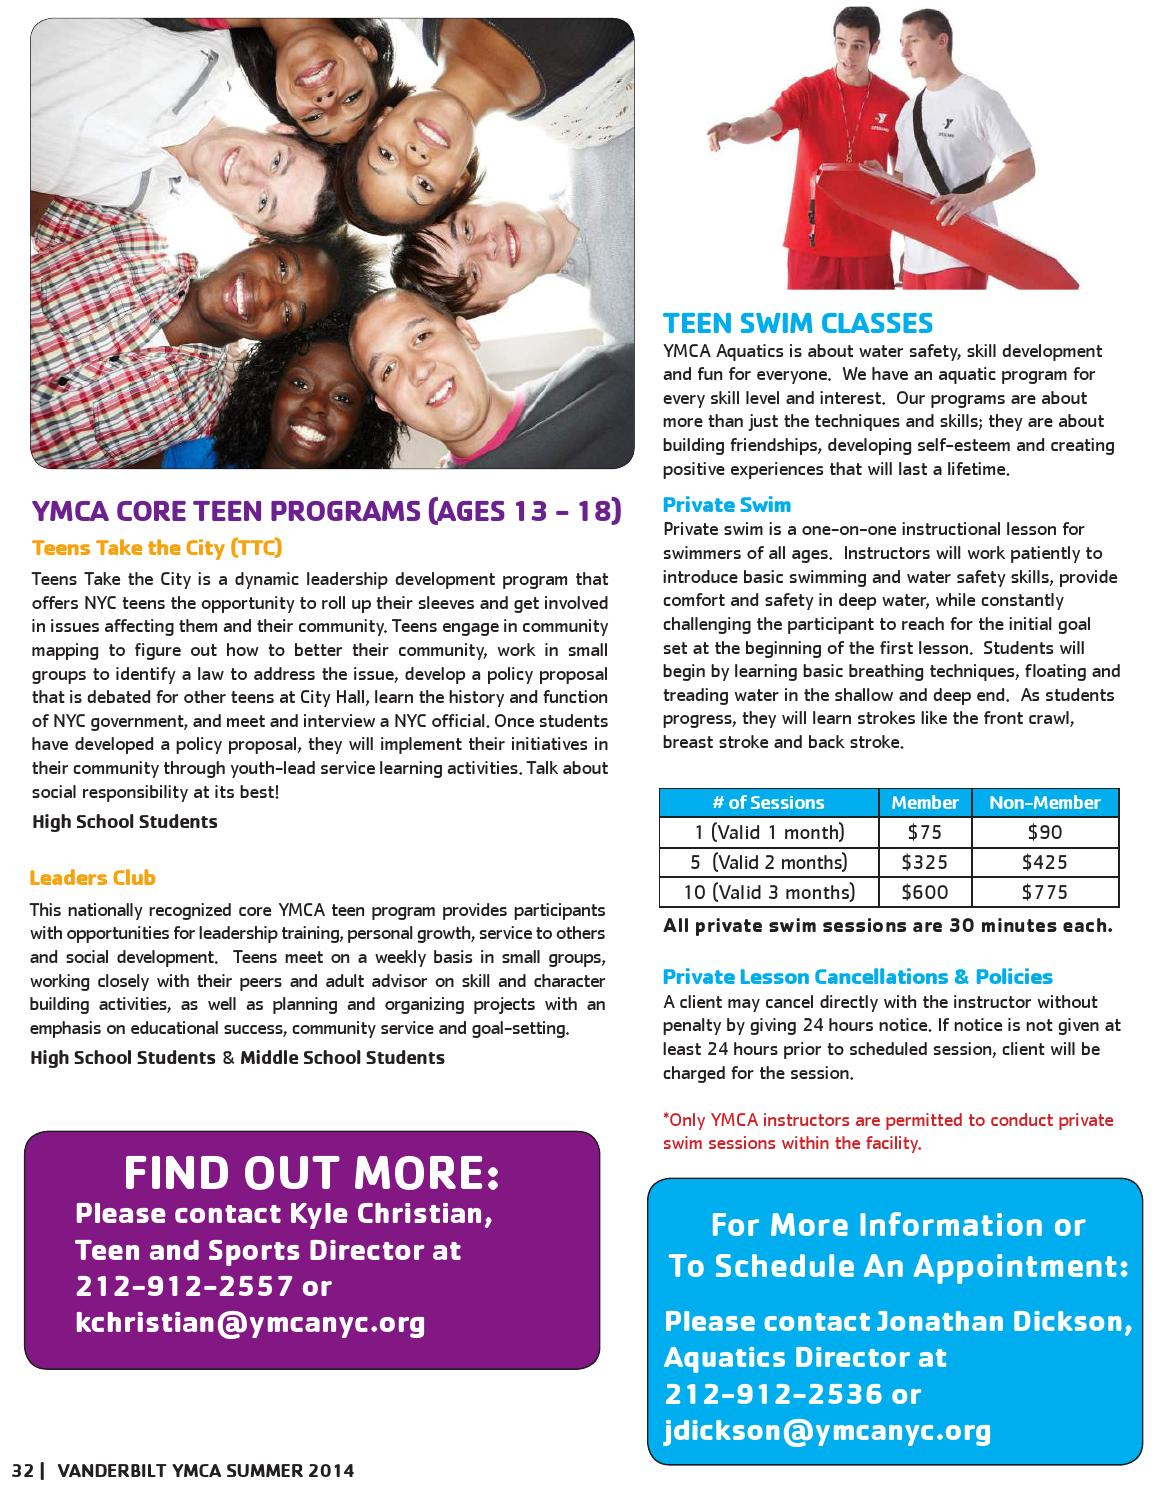 vanderbilt summer 2014 program guide by new york city's ymca - issuu